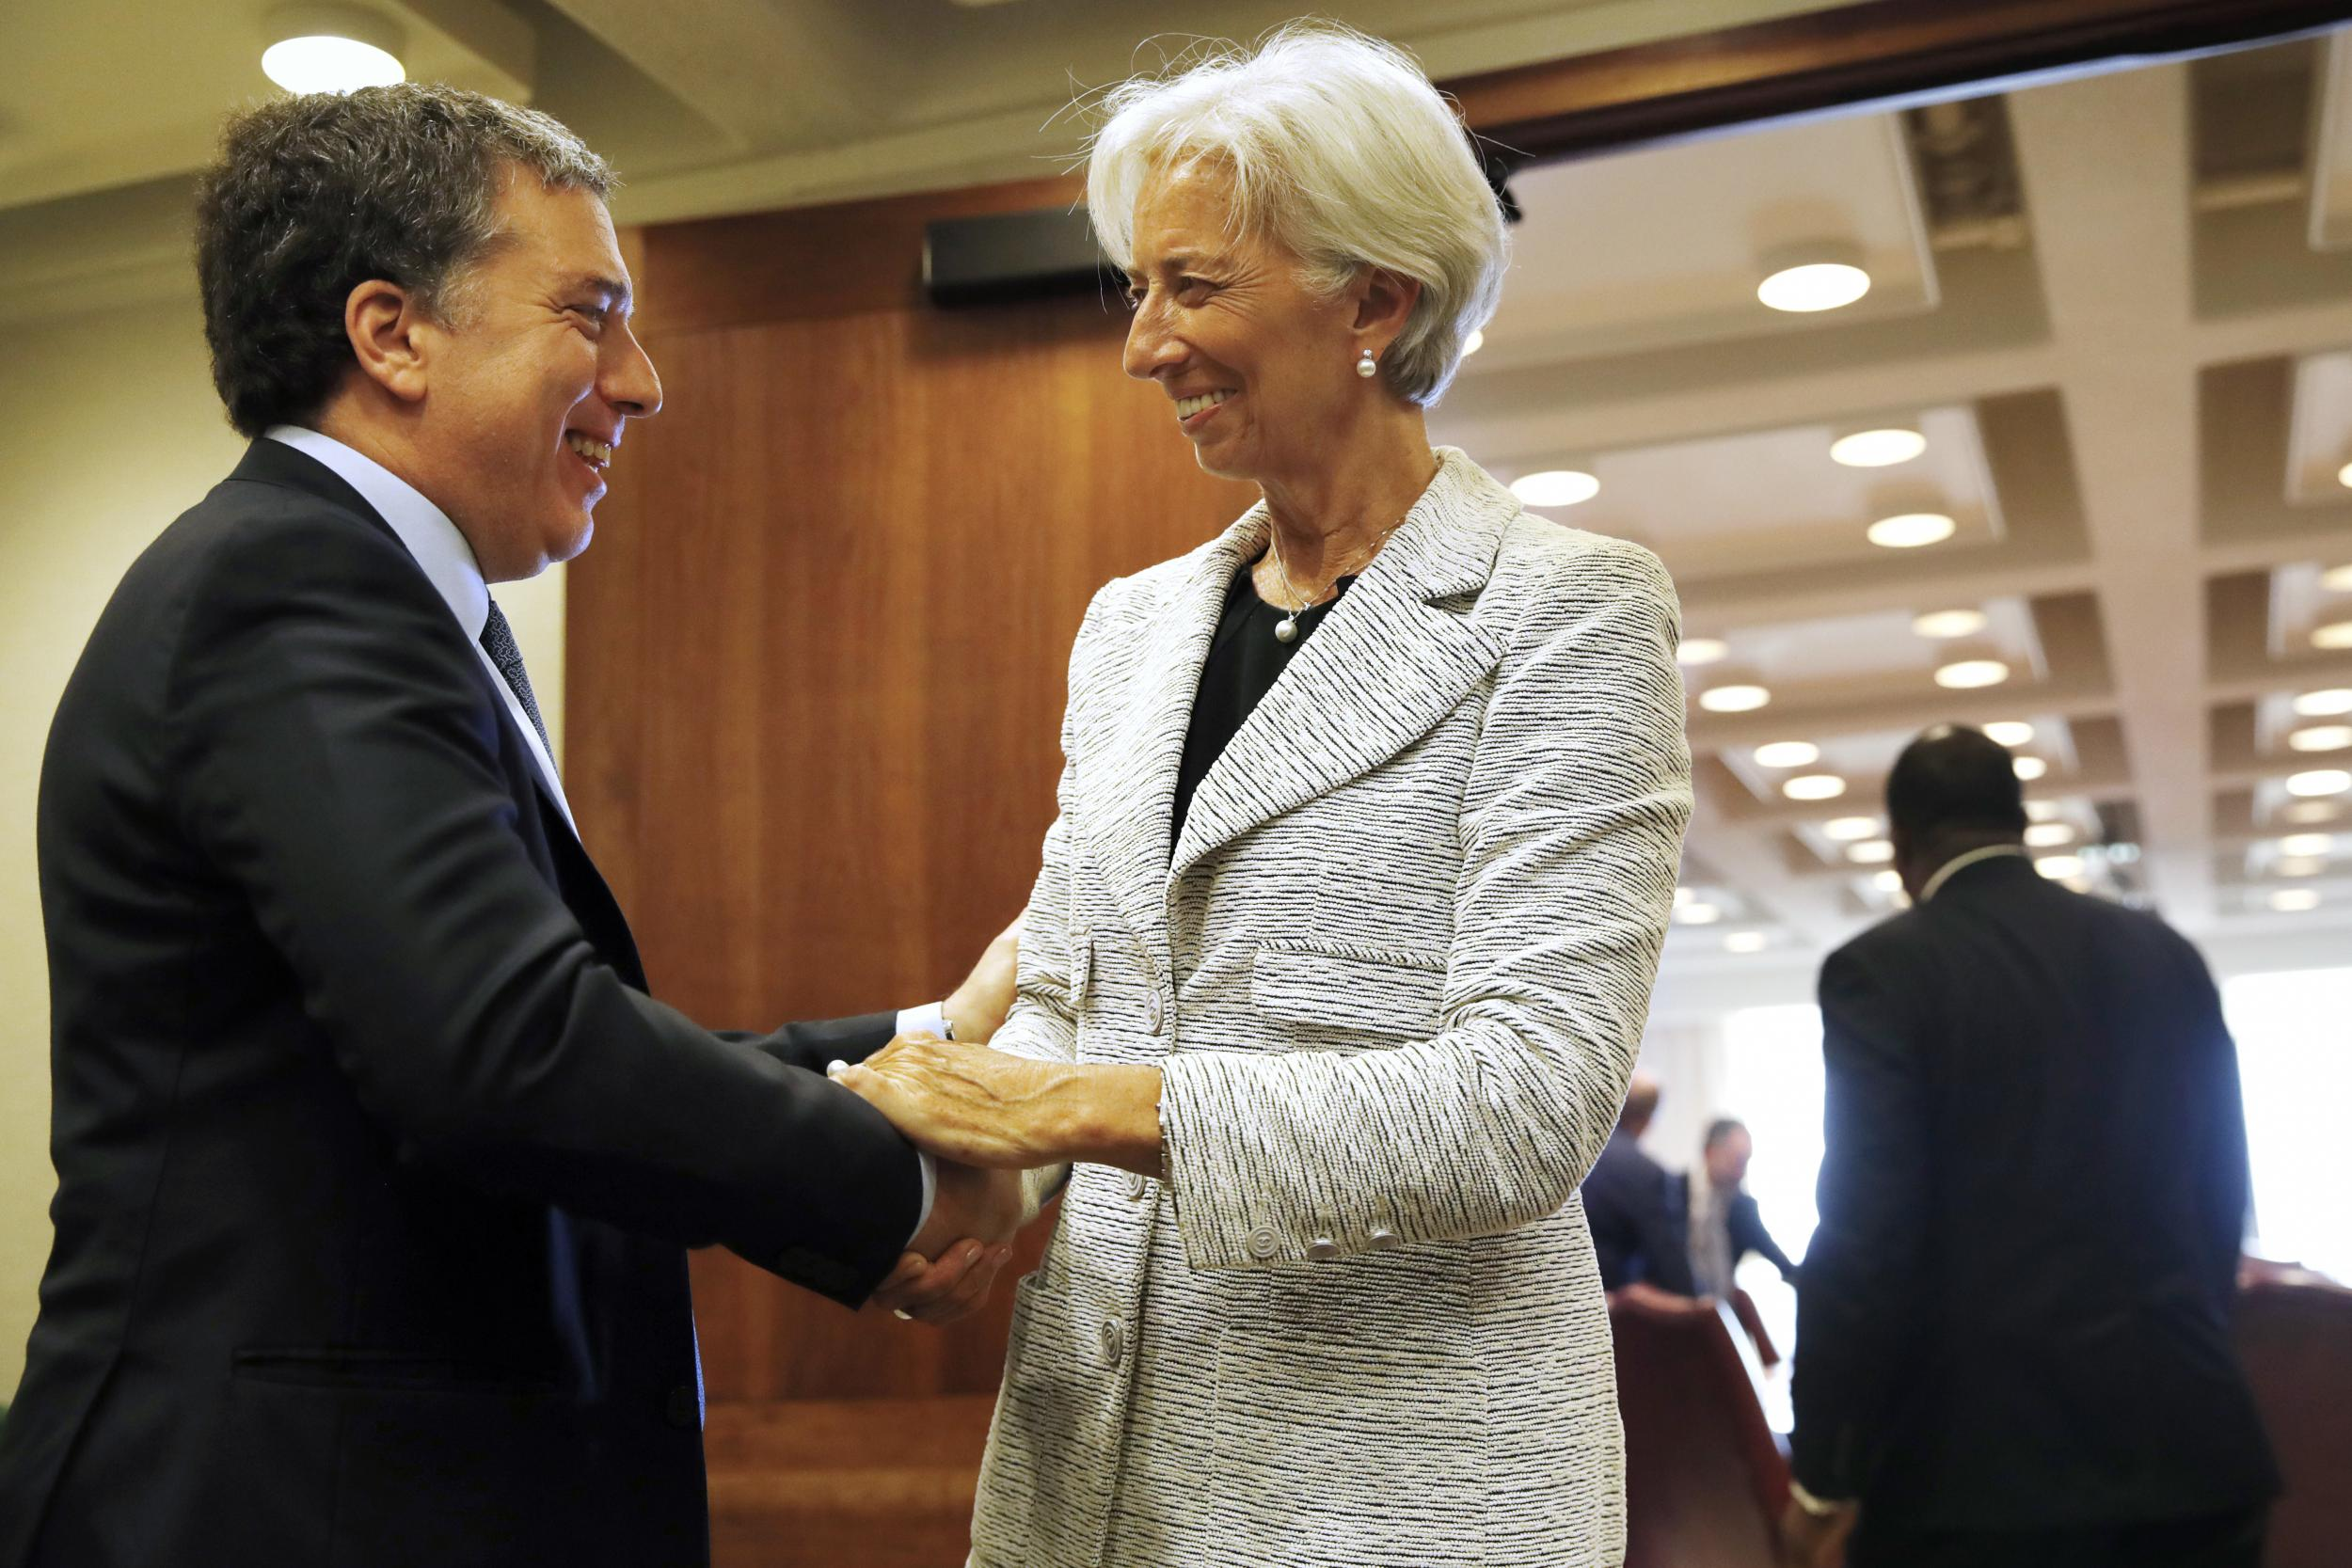 IMF agrees $50bn loan for inflation-stricken Argentina